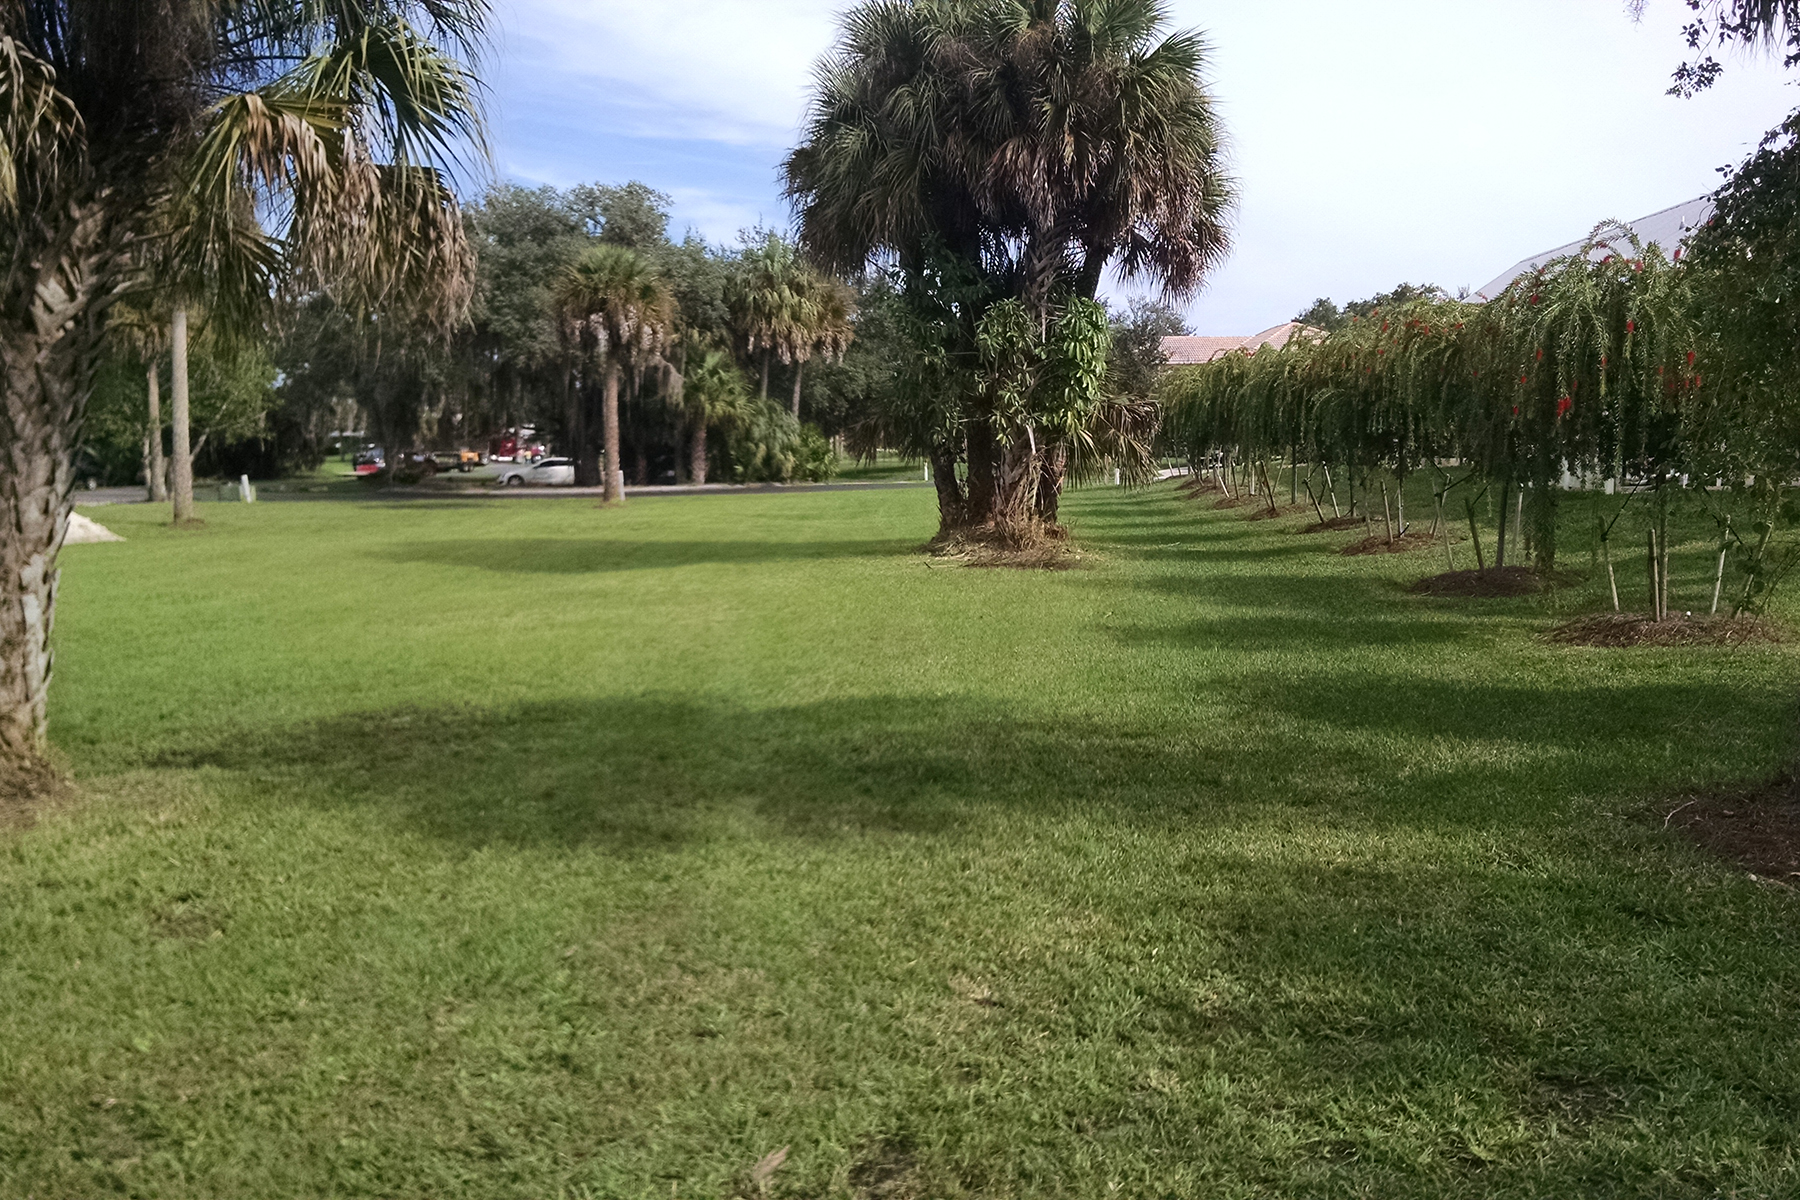 Land for Sale at 16420 Oakview Cir , Alva, FL 33920 16420 Oakview Cir, Alva, Florida 33920 United States